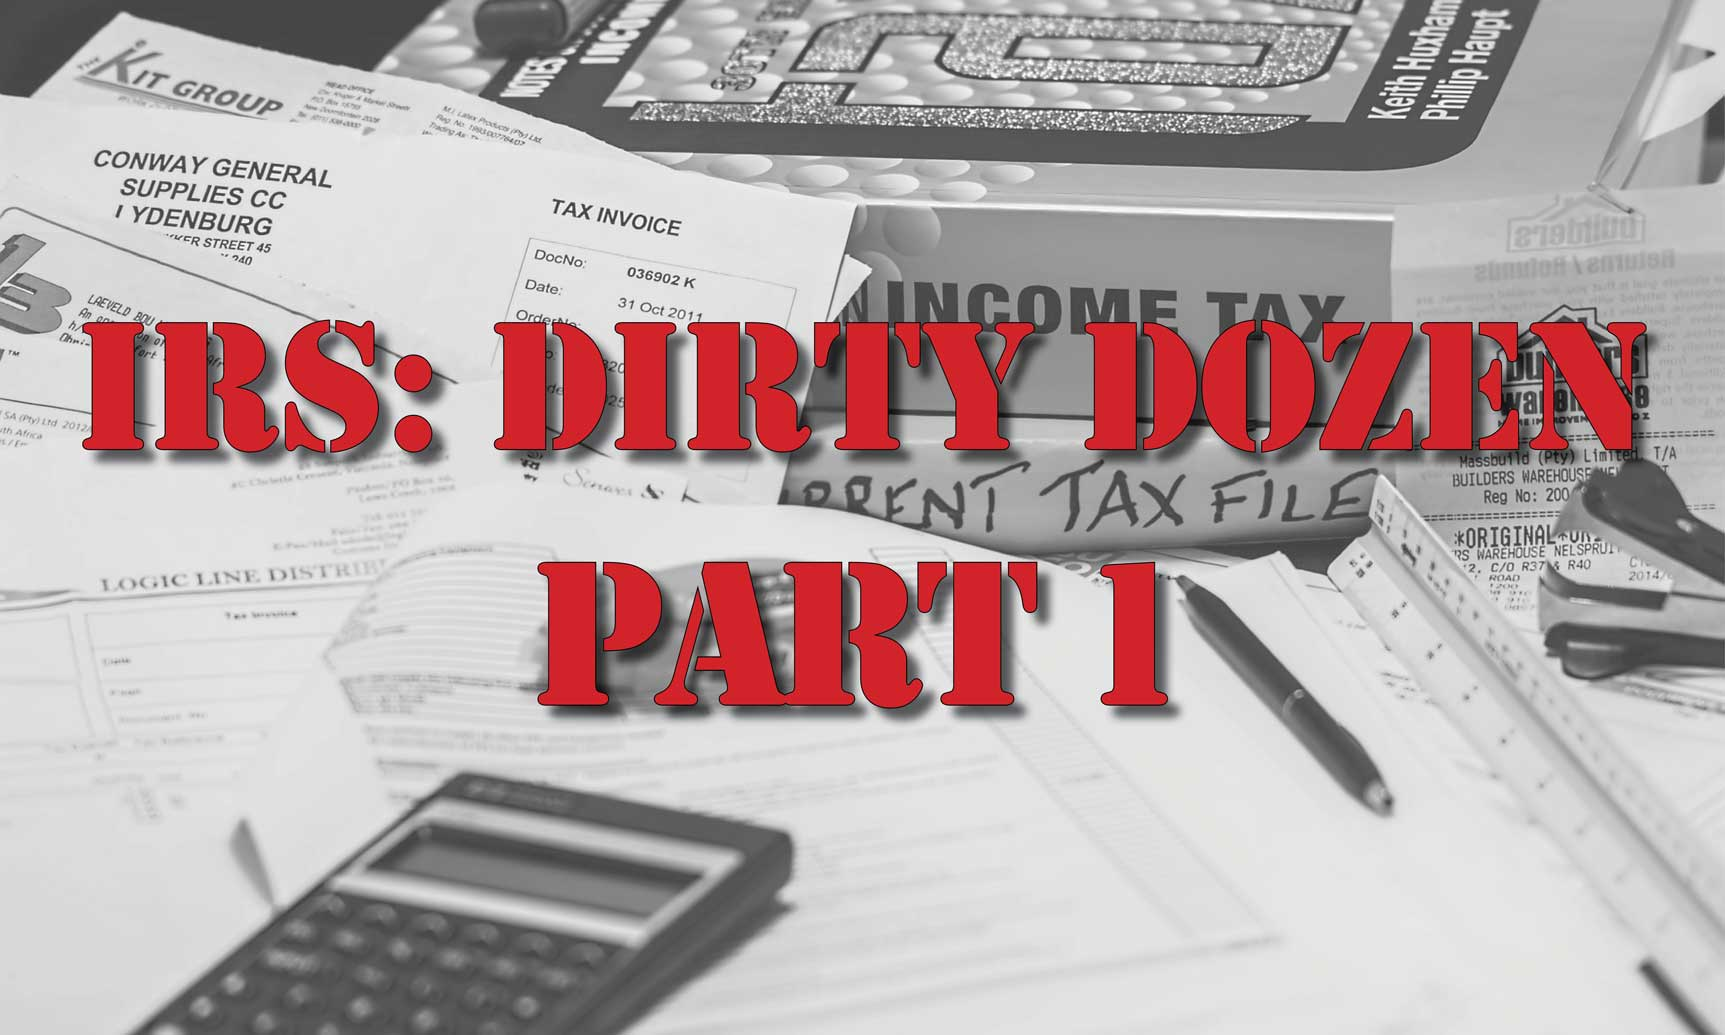 IRS: Dirty Dozen Part 1